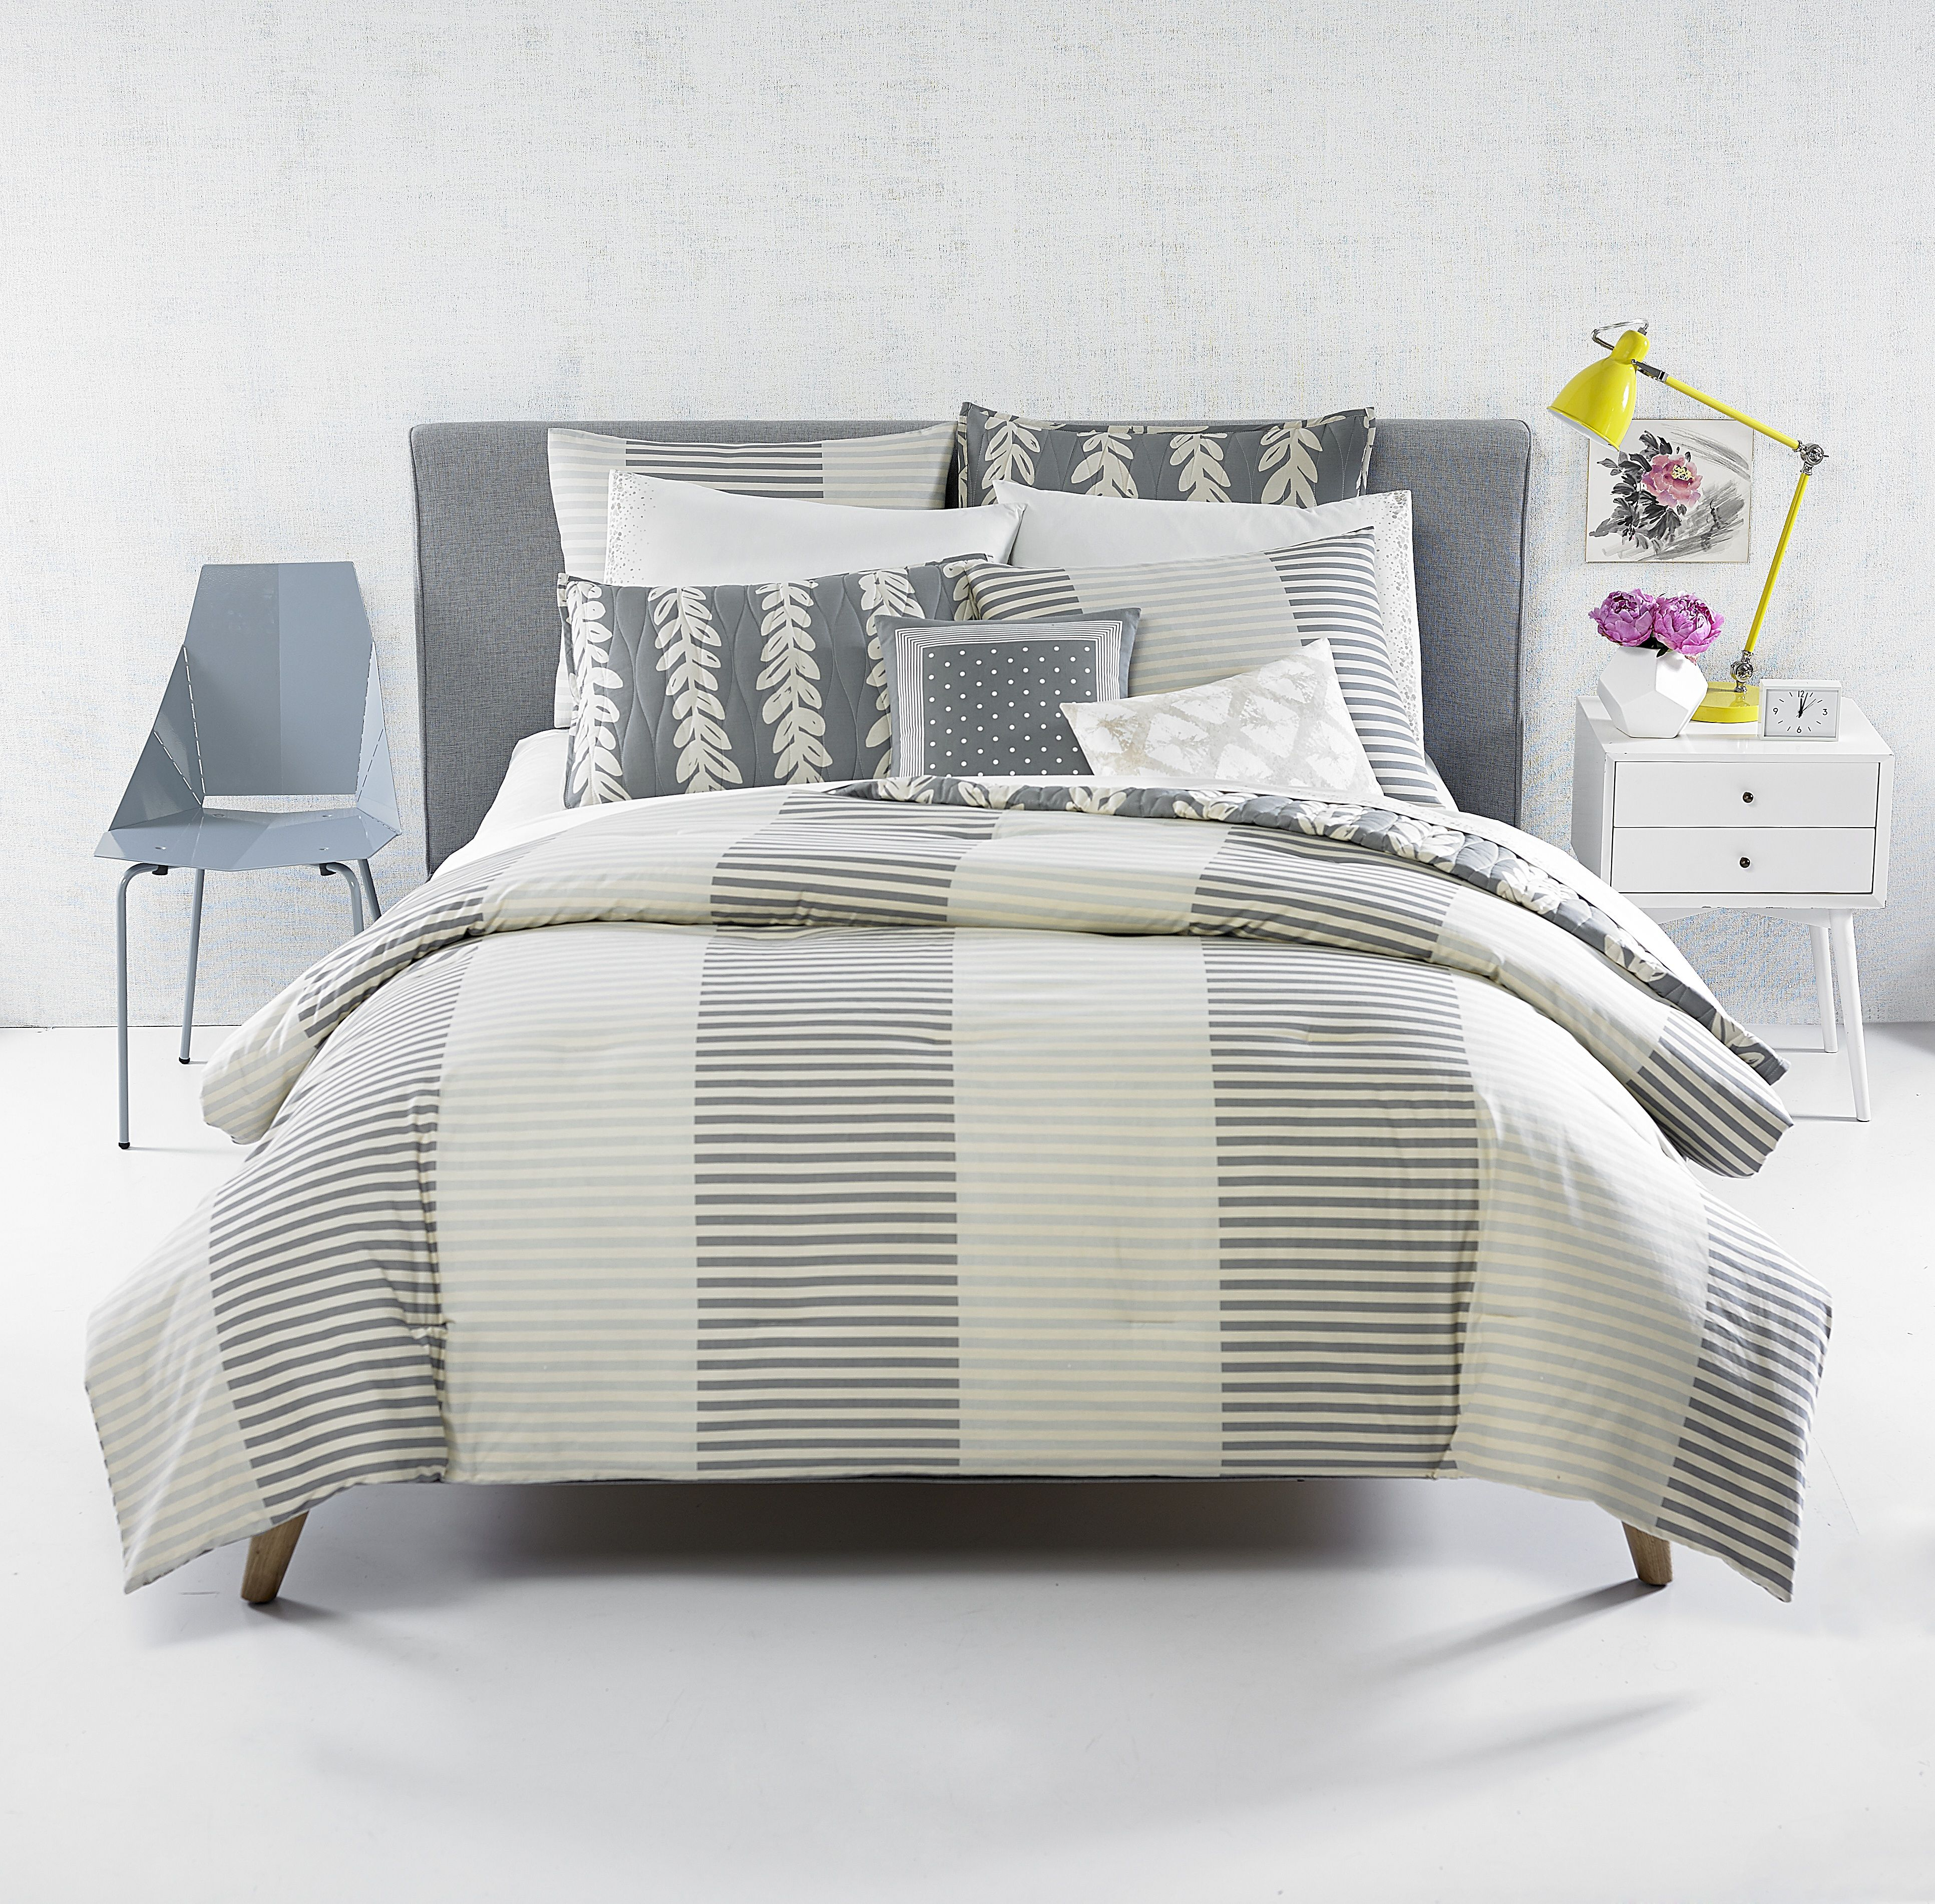 Mulberry stripe queen comforter set